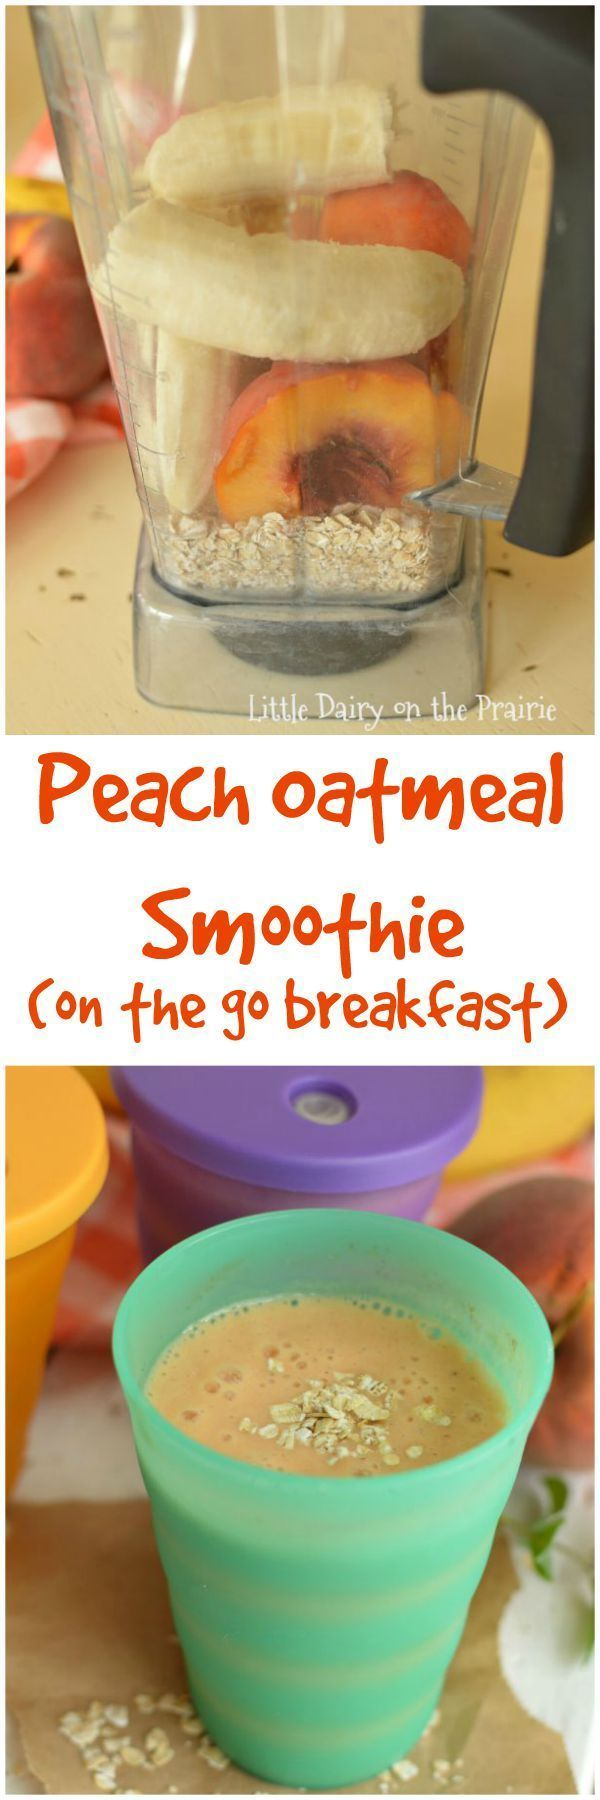 Peach Oatmeal Smoothies are a healthy on the go breakfast that will stick with you until lunch time featured on Ella Claire.